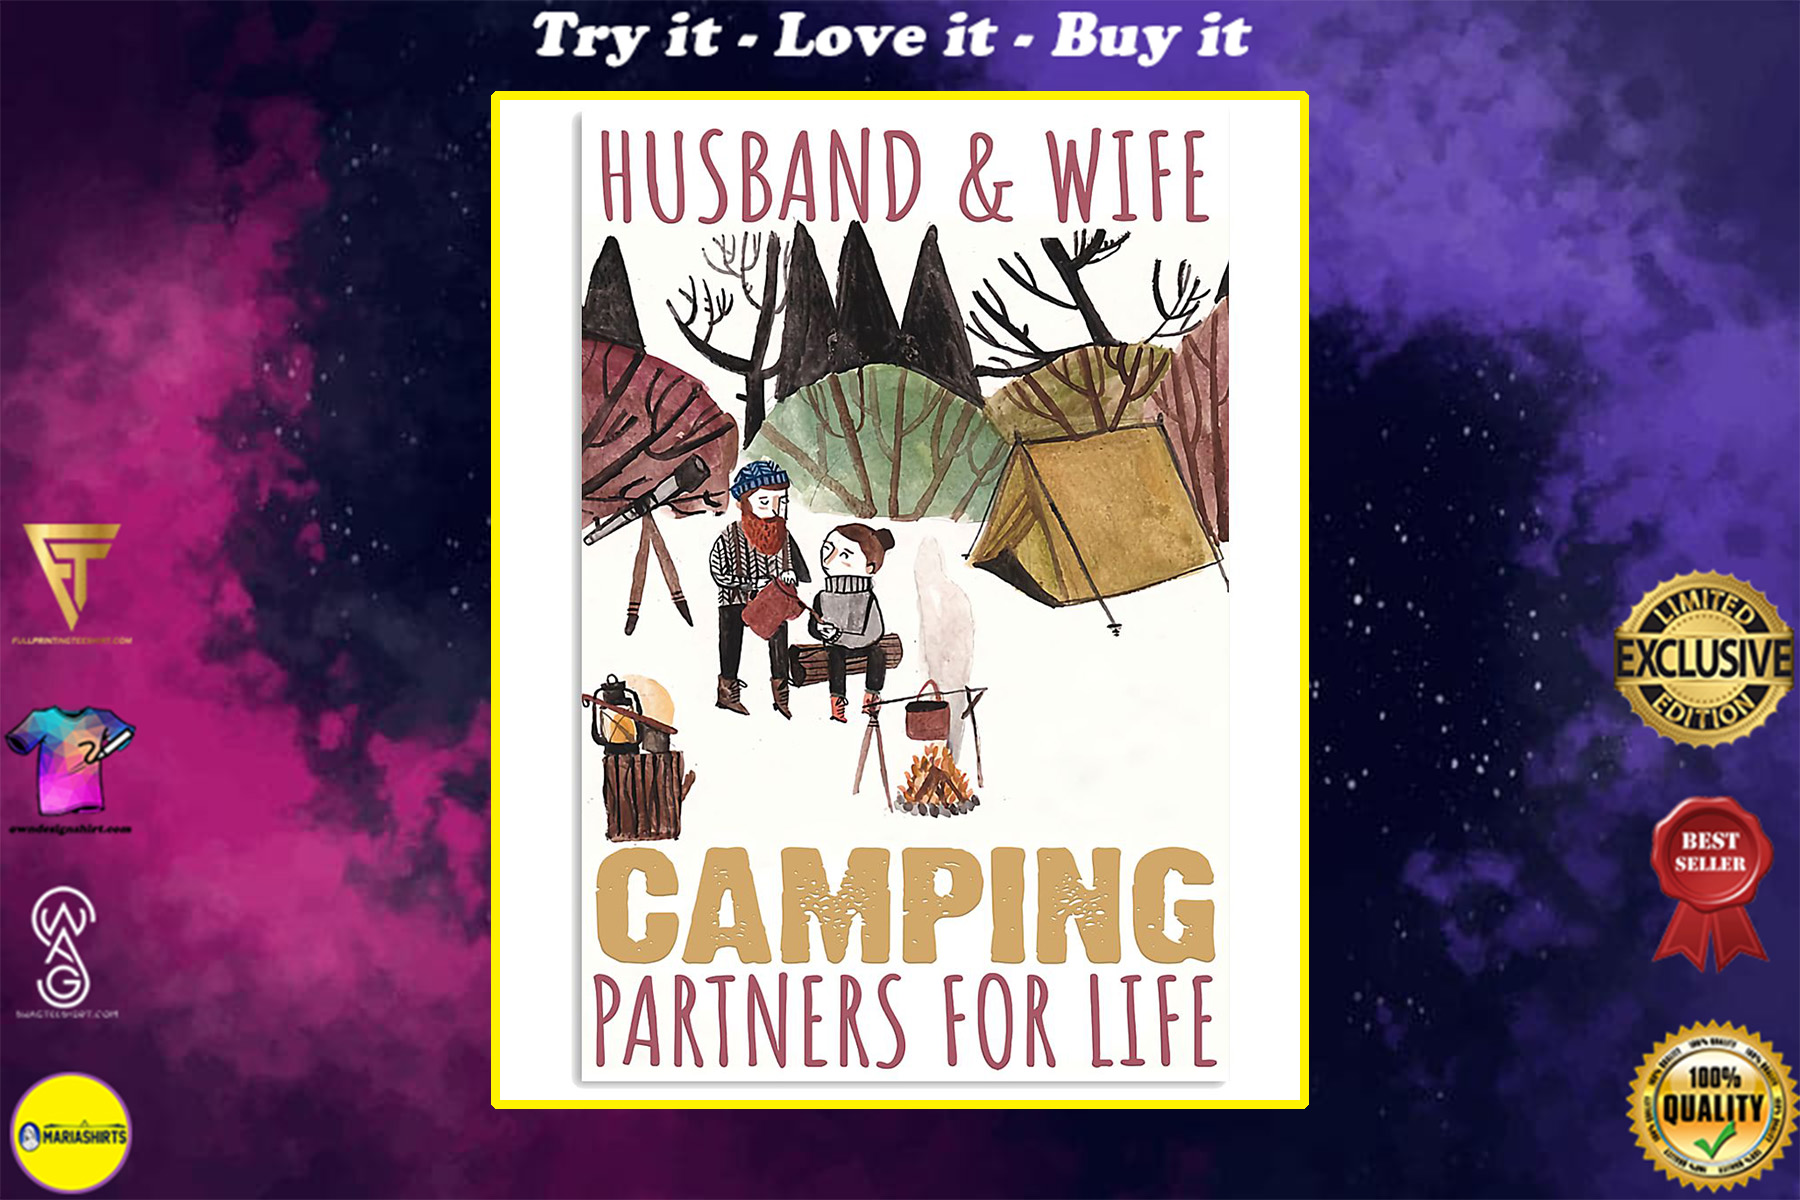 husband and wife camping partners for life poster